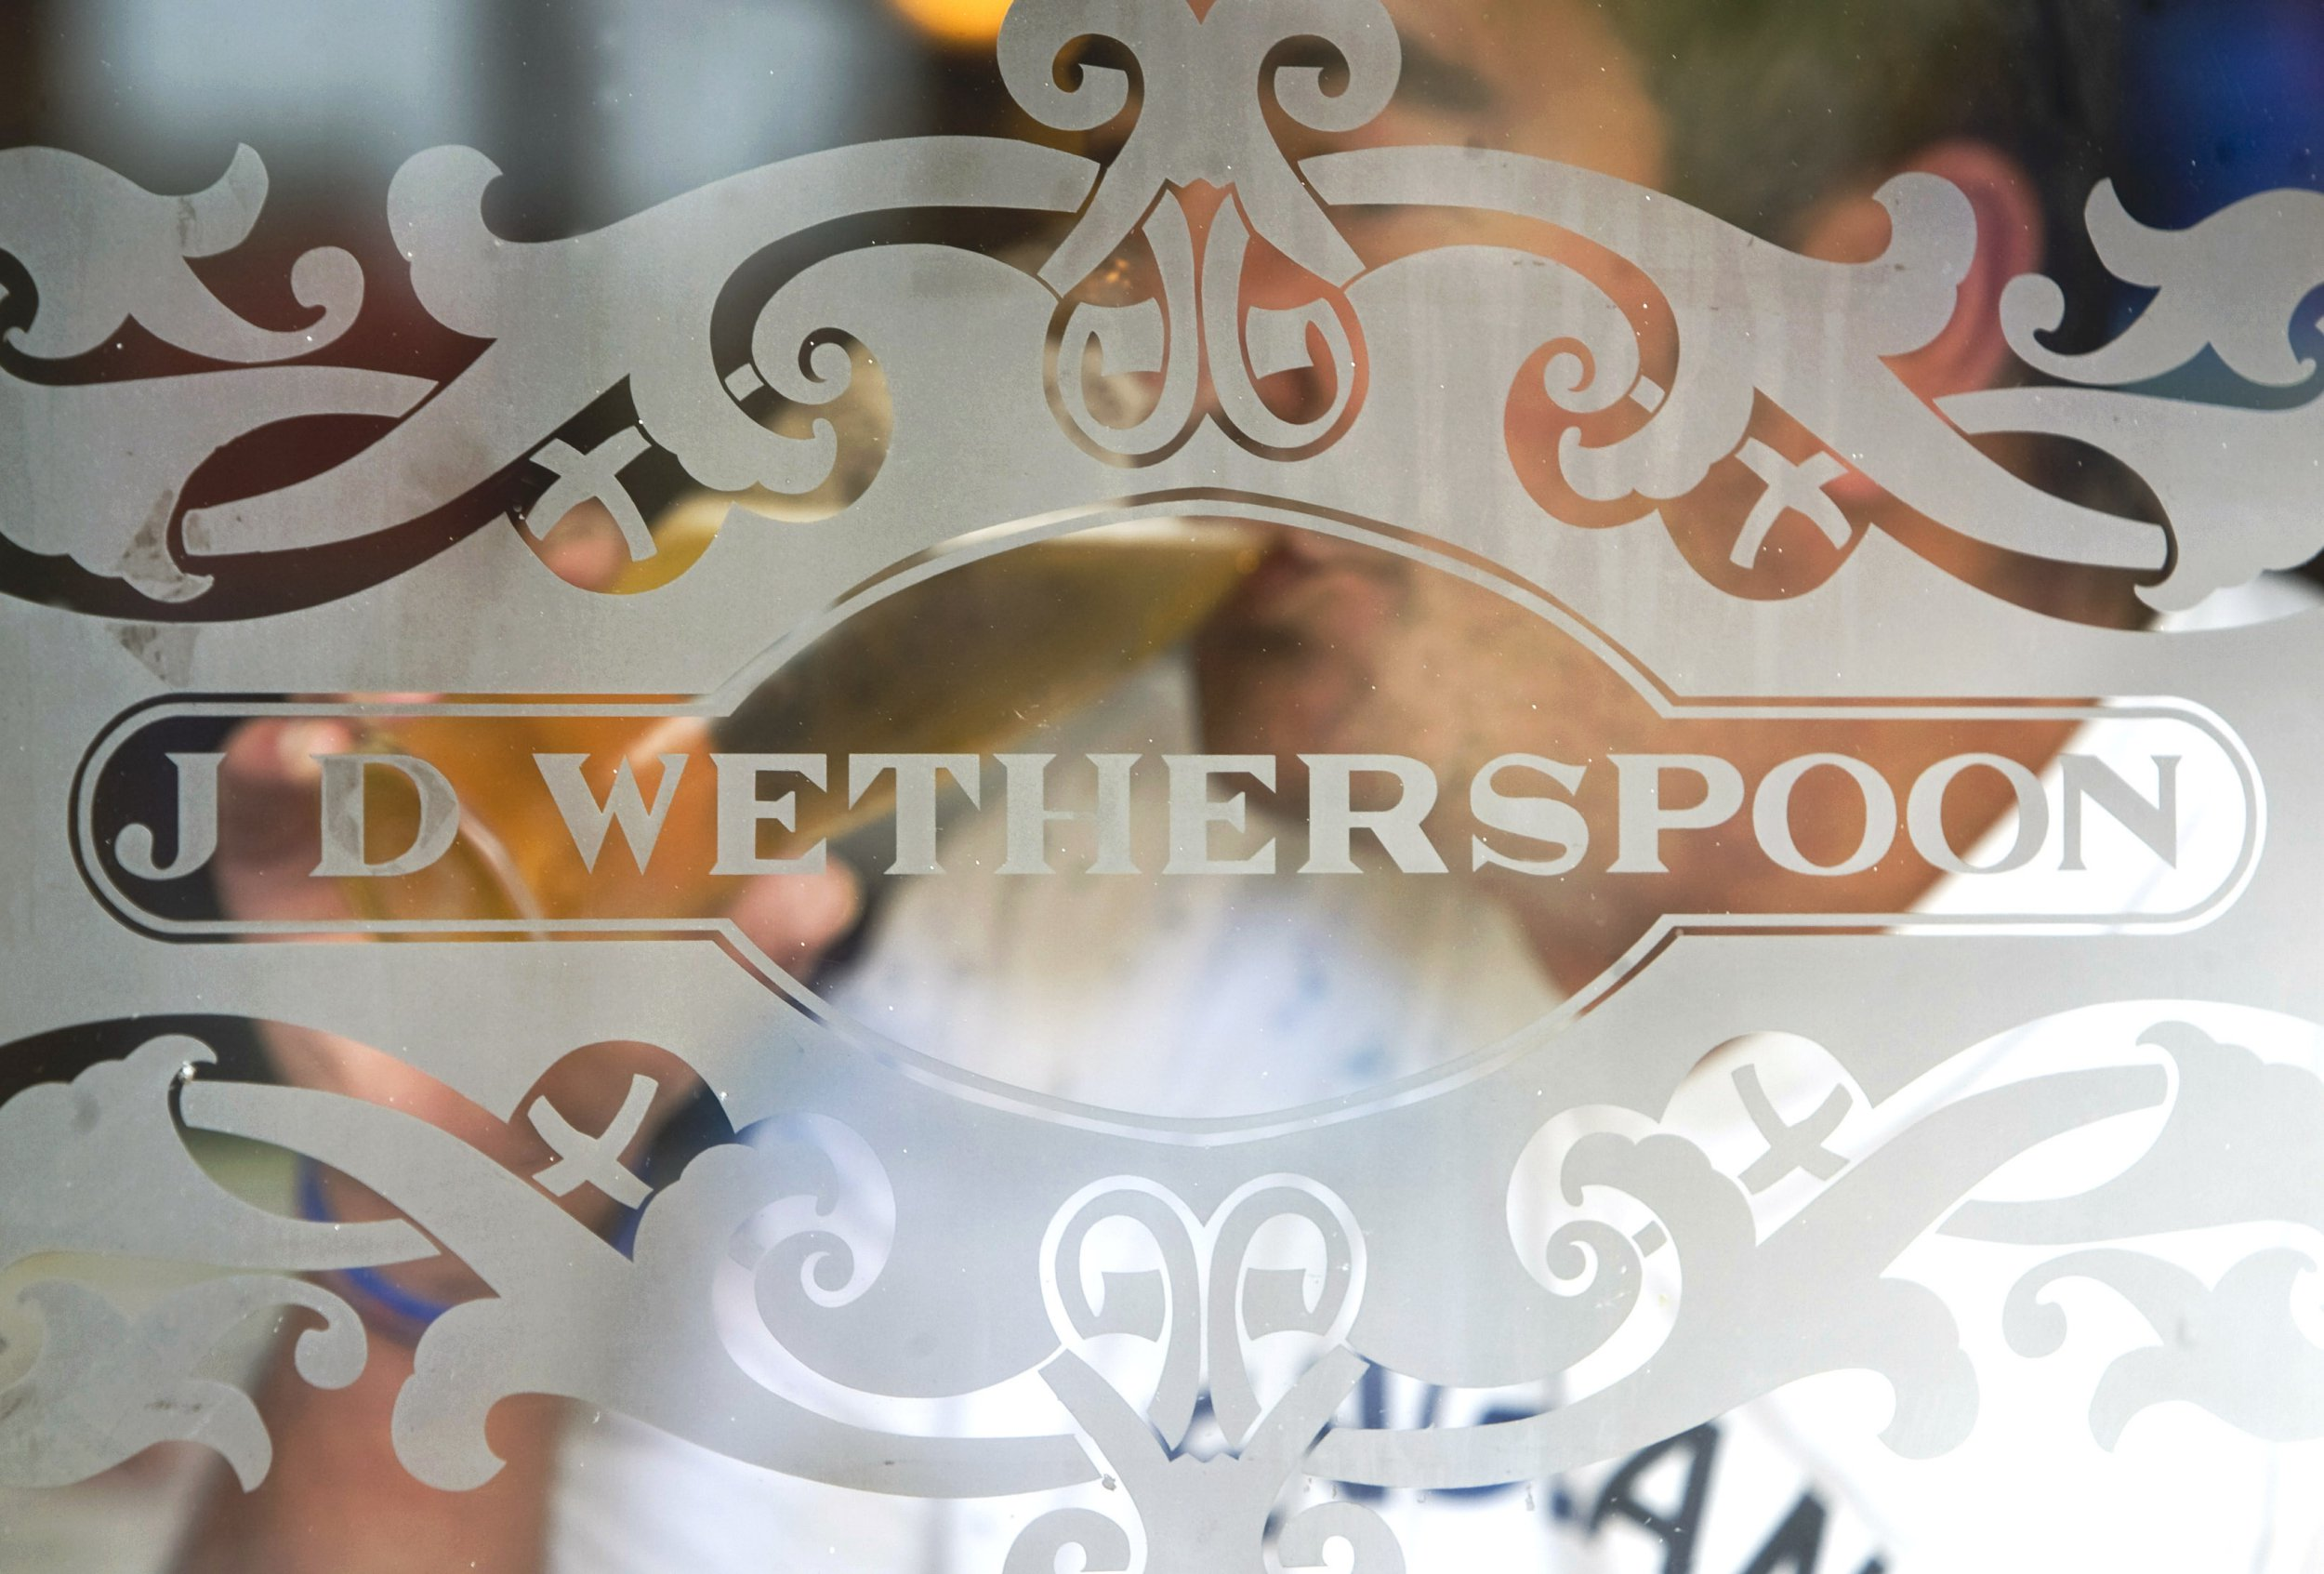 UNITED KINGDOM - SEPTEMBER 09: The J.D. Wetherspoon logo is displayed on a glass door at a pub in Hornchurch, U.K., on Wednesday, Sept. 9, 2009. Britain's branded pub chains from Wetherspoons to Marston's are expanding during the U.K.'s worst recession since World War II, offering bargain beers and food as individual pubs go out of business. (Photo by Chris Ratcliffe/Bloomberg via Getty Images)